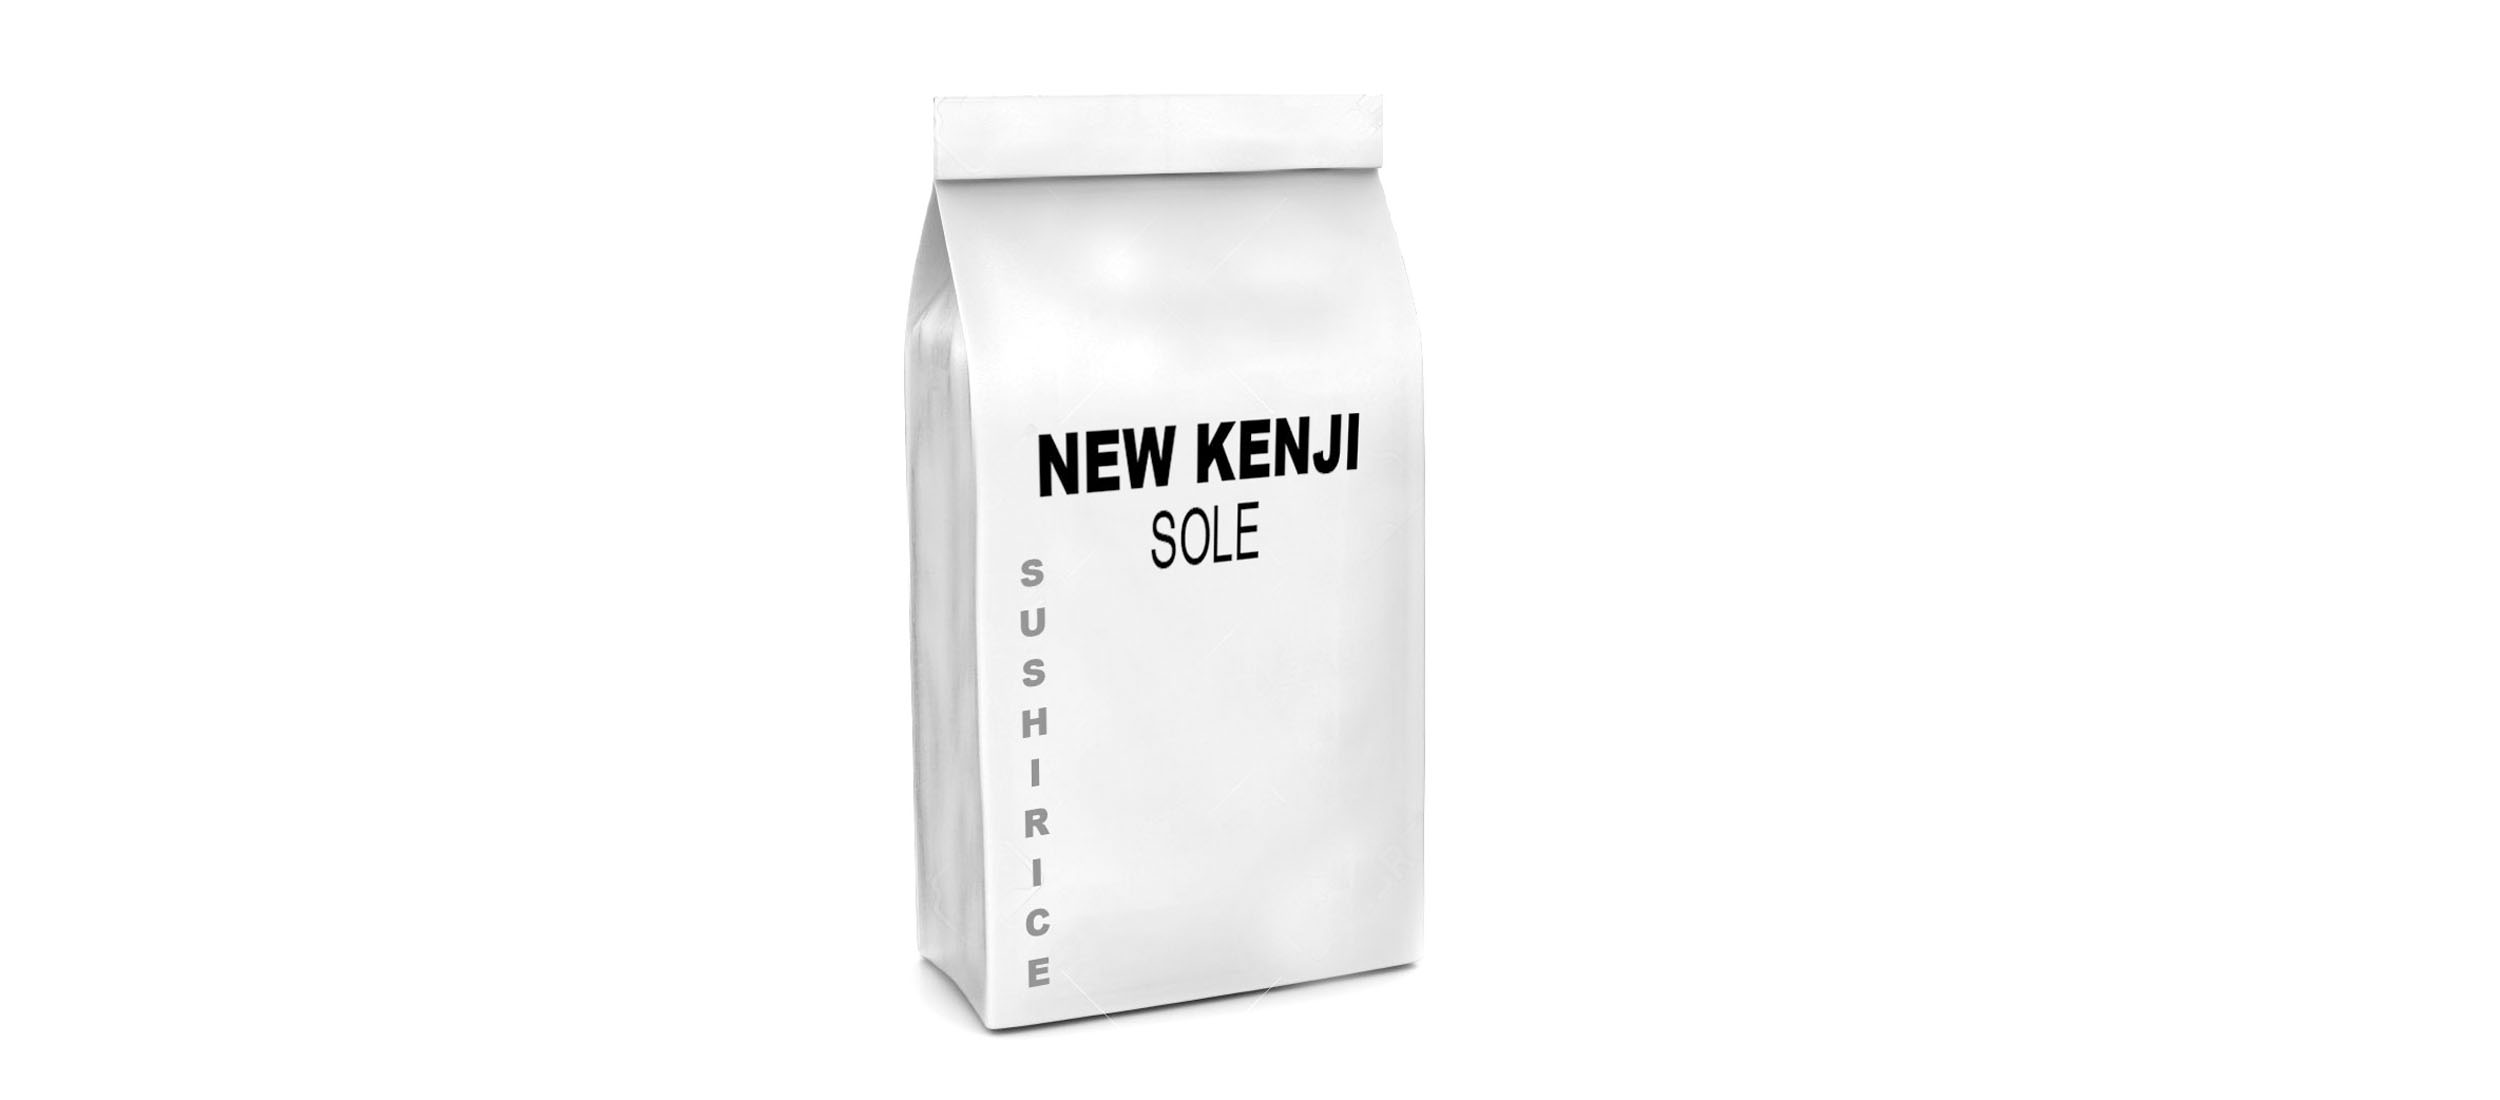 Riz Sole New Kenji